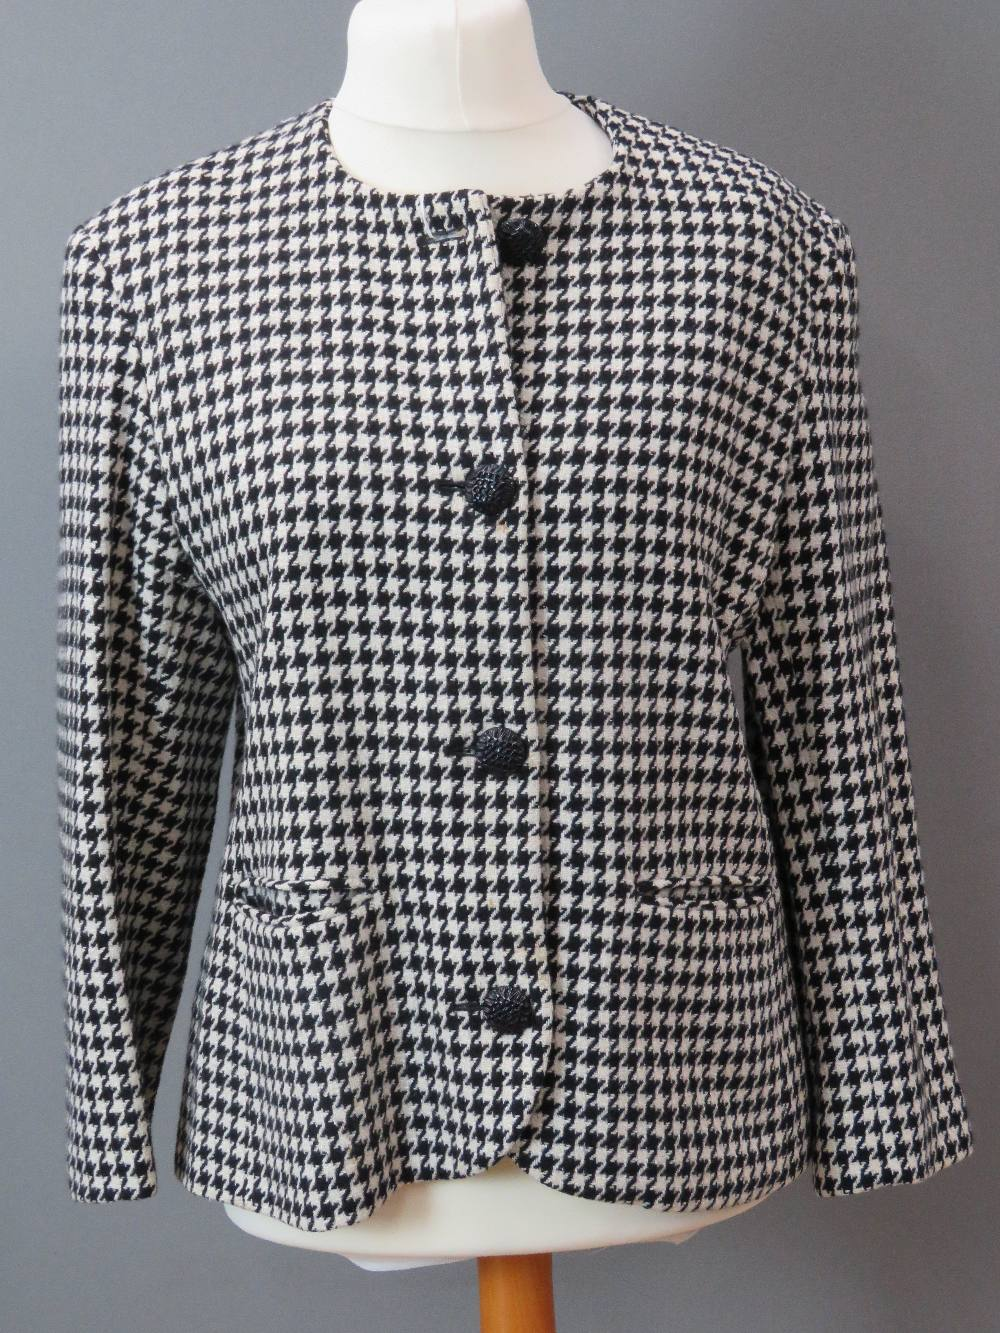 A hounds tooth pattern ladies jacket, 75